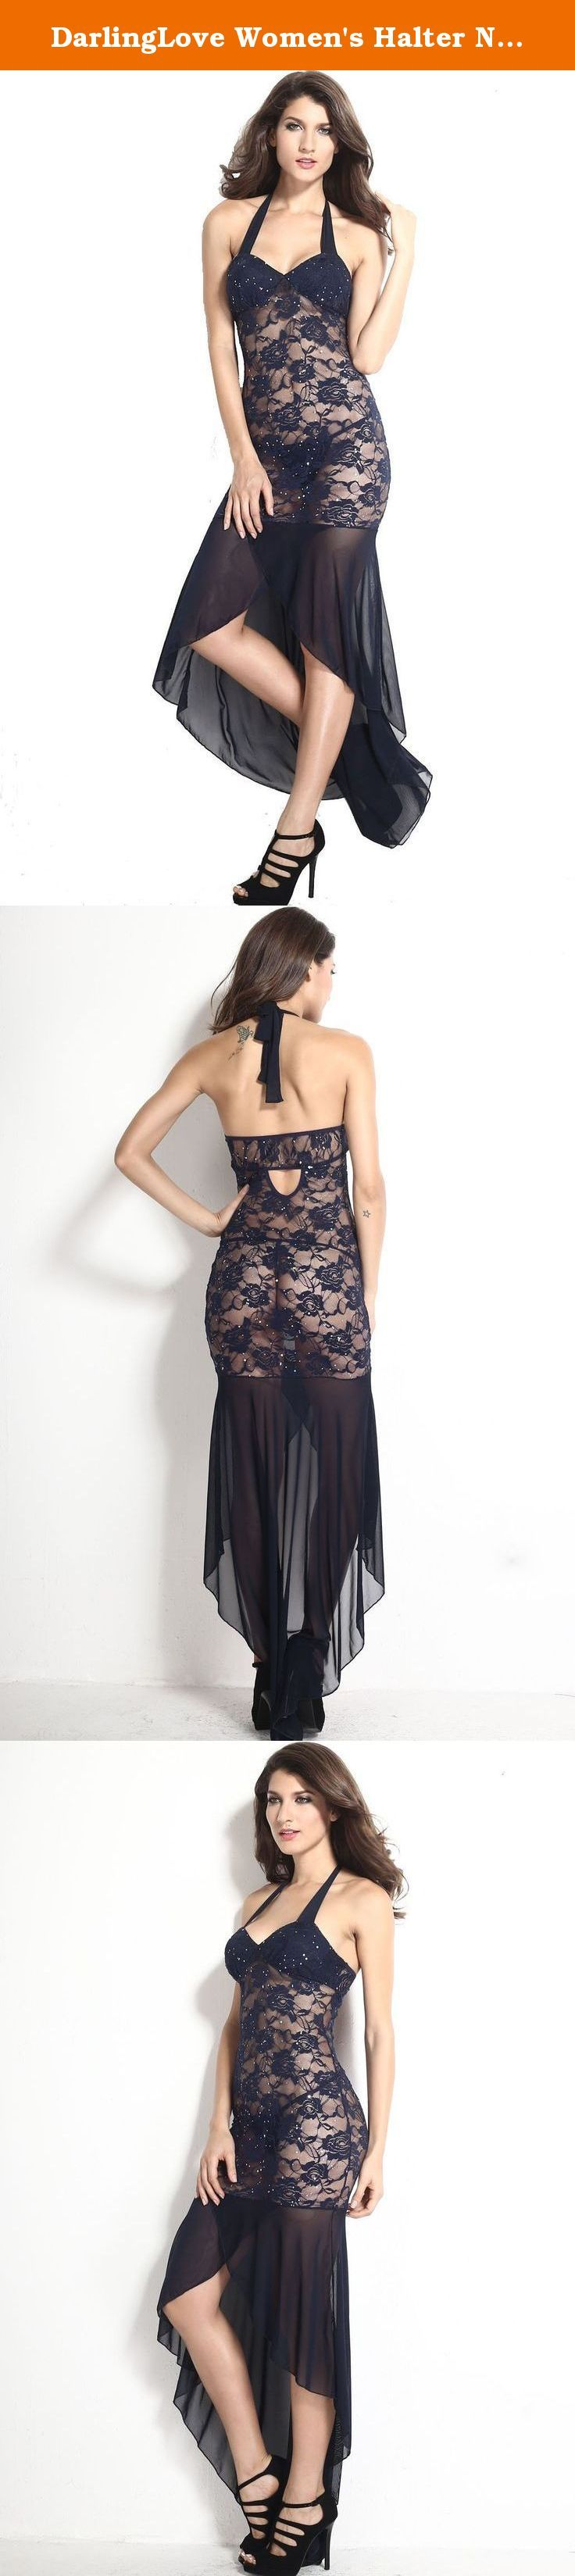 DarlingLove Women's Halter Neck Long Floral Lace Sequin Navy Sheer Lingerie Gown. About DarlingLove DarlingLove committed to providing women with sexy Halloween costume, jumpsuit, lingerie etc nearly 20 years. We creates comfortable, very cool and attractive products through constant innovation. We have more than 200 employees in concentrate on making the world's lingerie for you. Without leaving your home, you could purchase lingerie with premium quality at wholesale prices. Details Long...